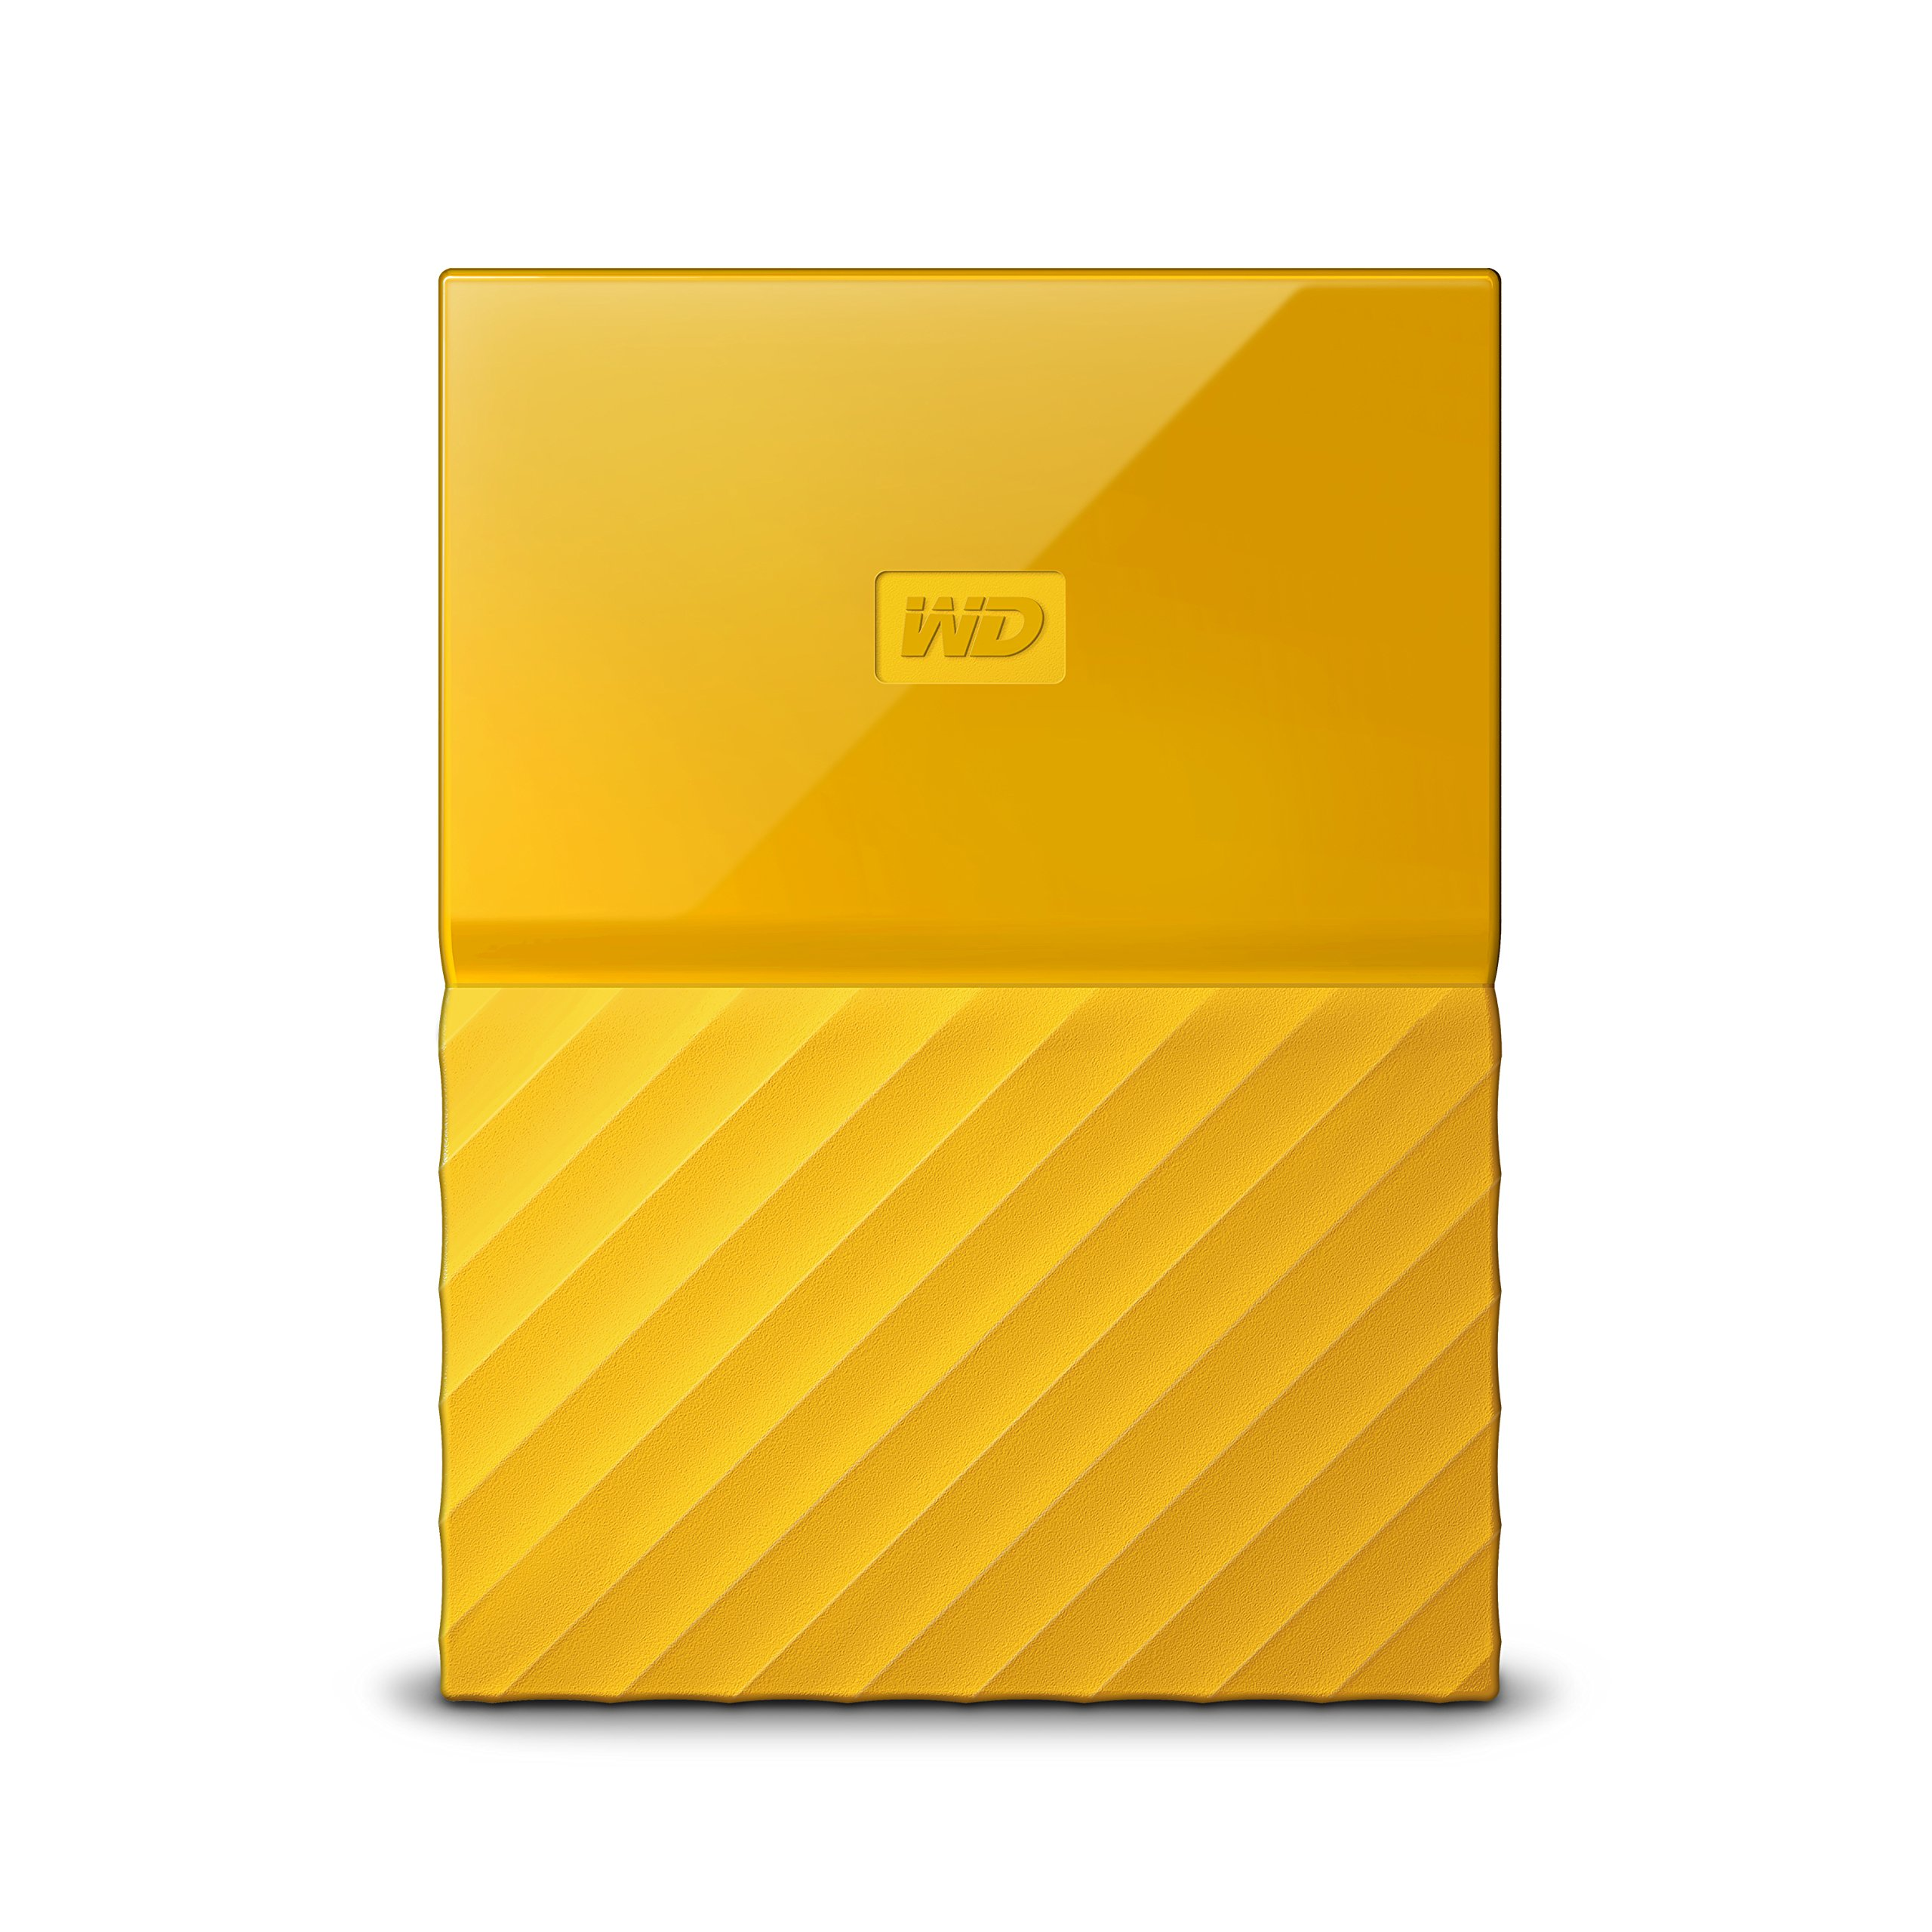 WD 4TB Yellow My Passport  Portable External Hard Drive - USB 3.0 - WDBYFT0040BYL-WESN